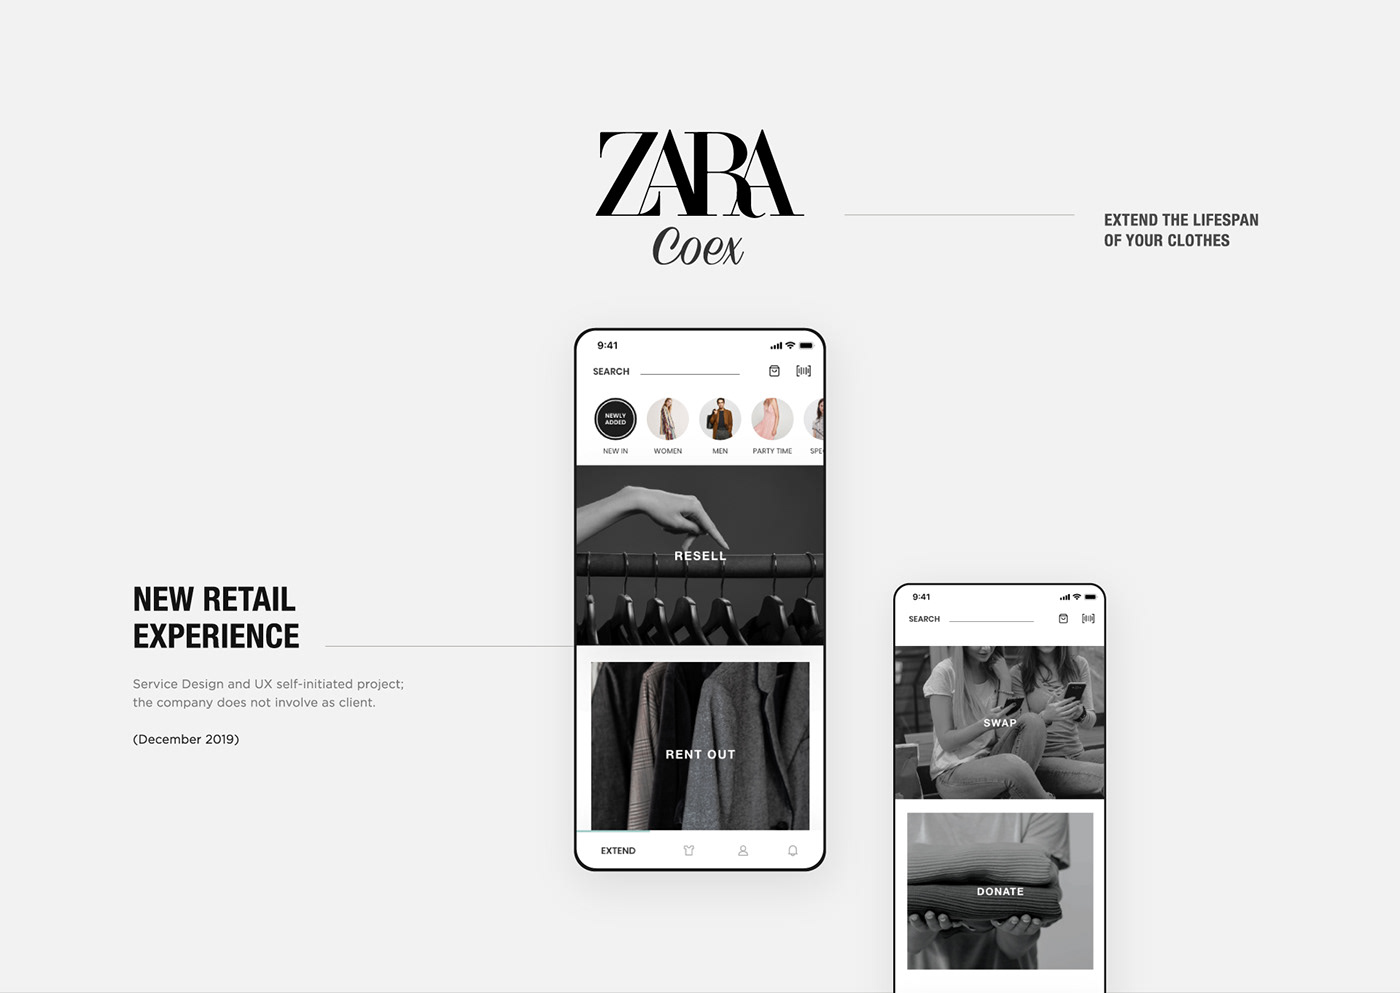 clothes clothing app Fashion Retail Retail secondhand marketplace secondhand shopping selling used clothes shopping app Sustainable Fashion zara